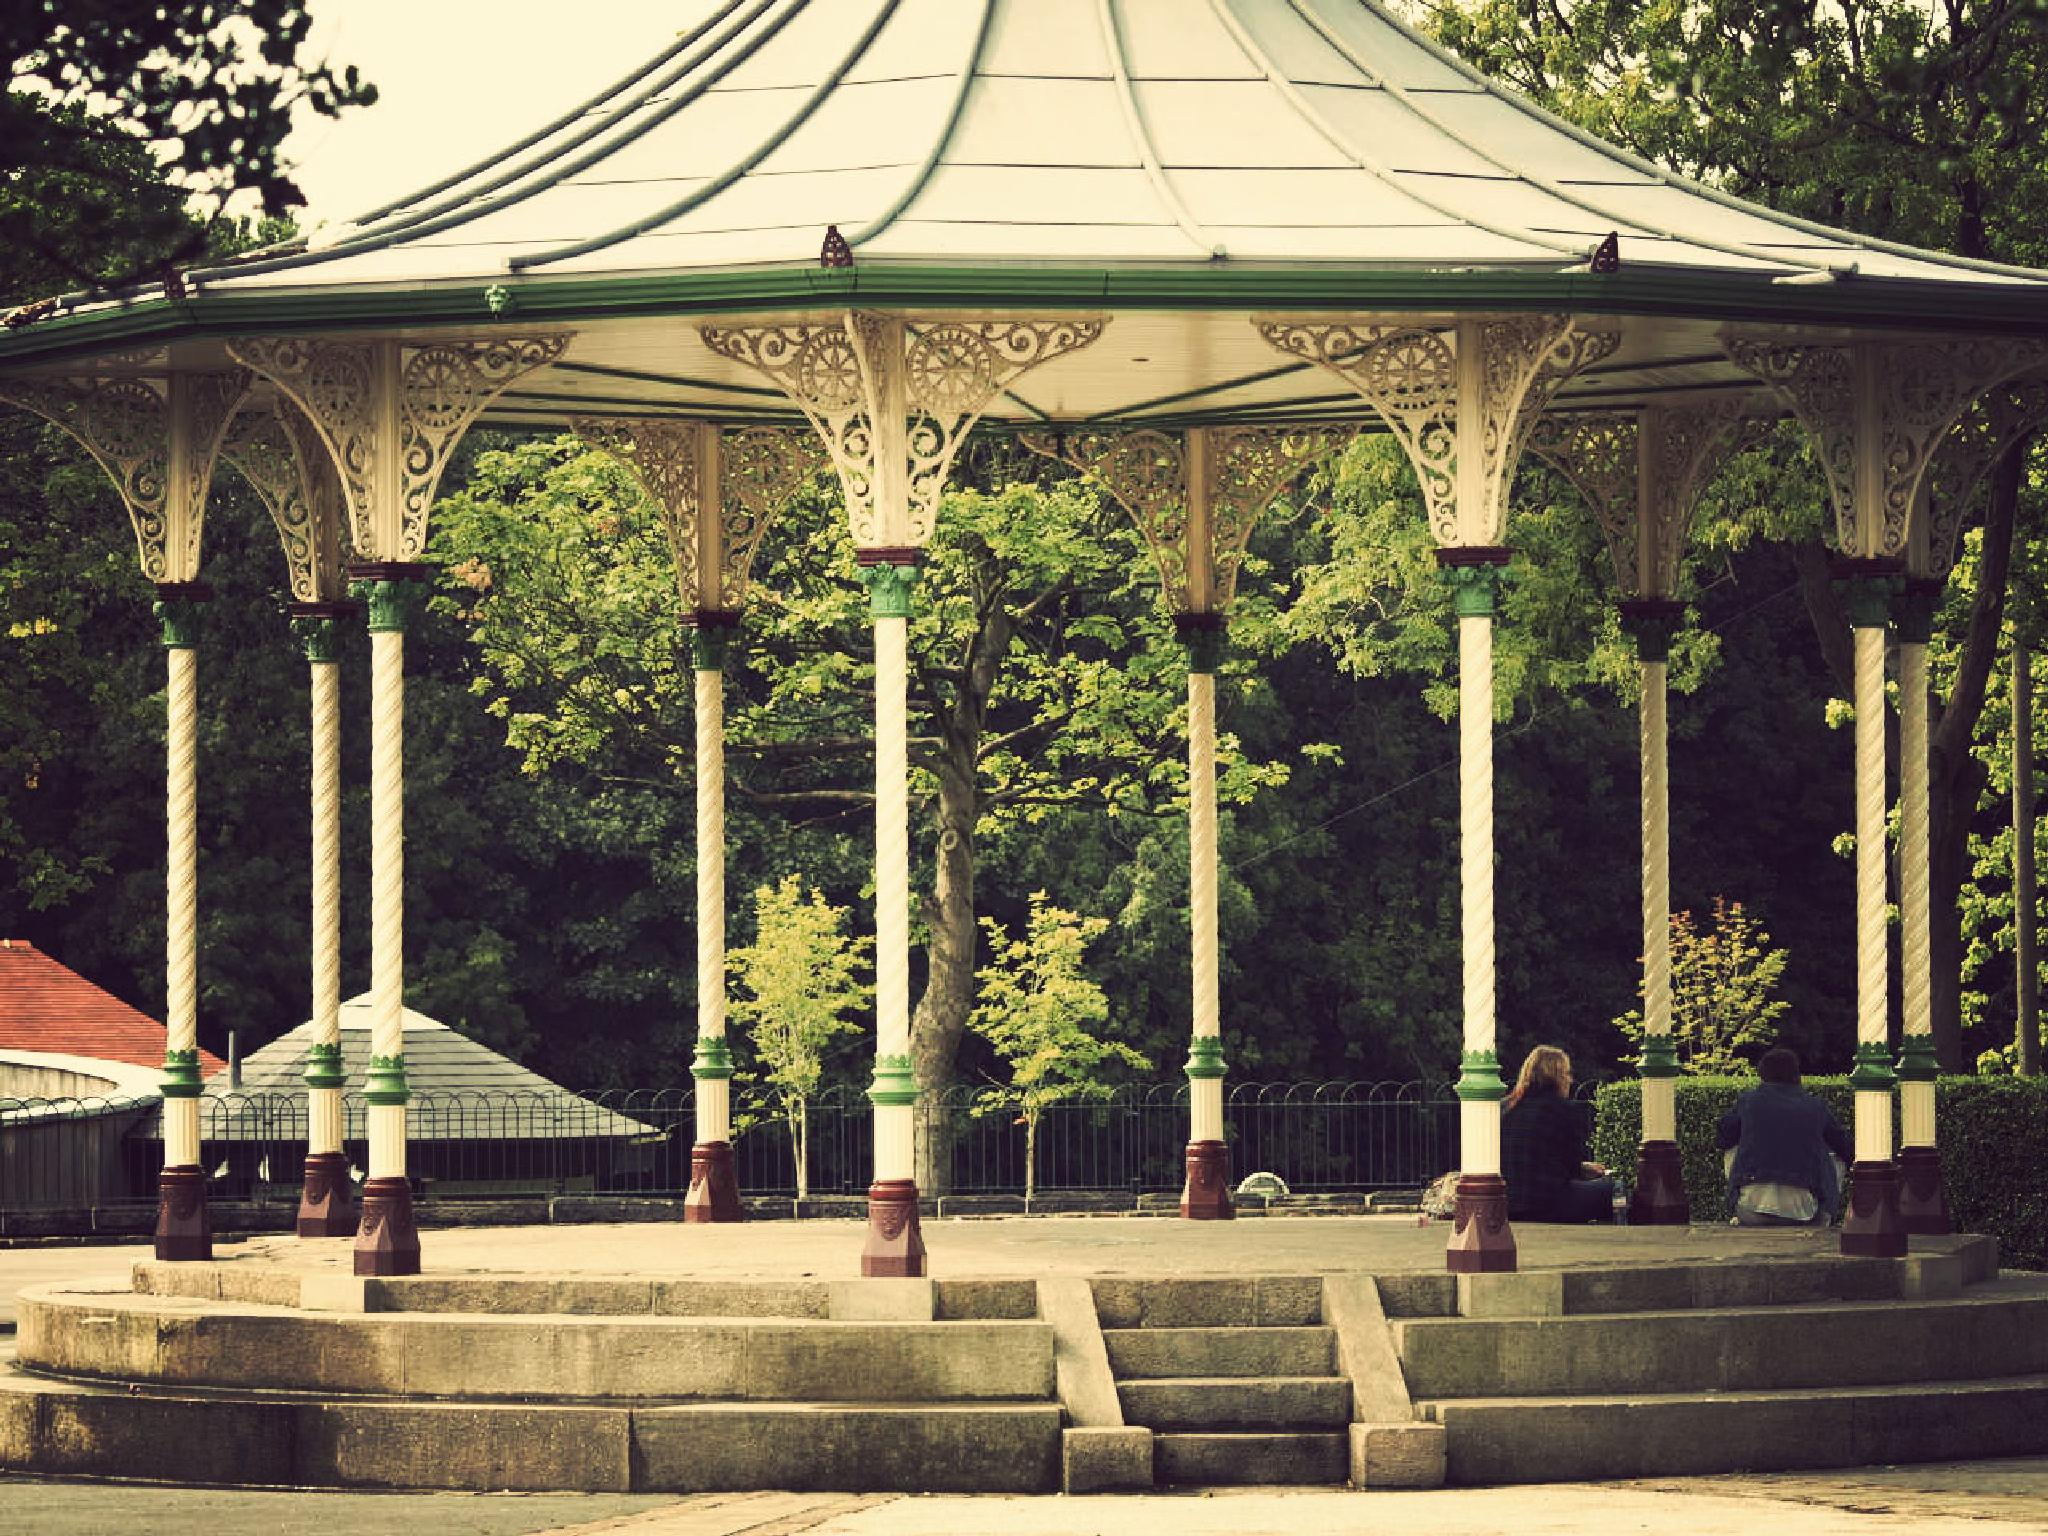 Victorian bandstand by Happy Snapper